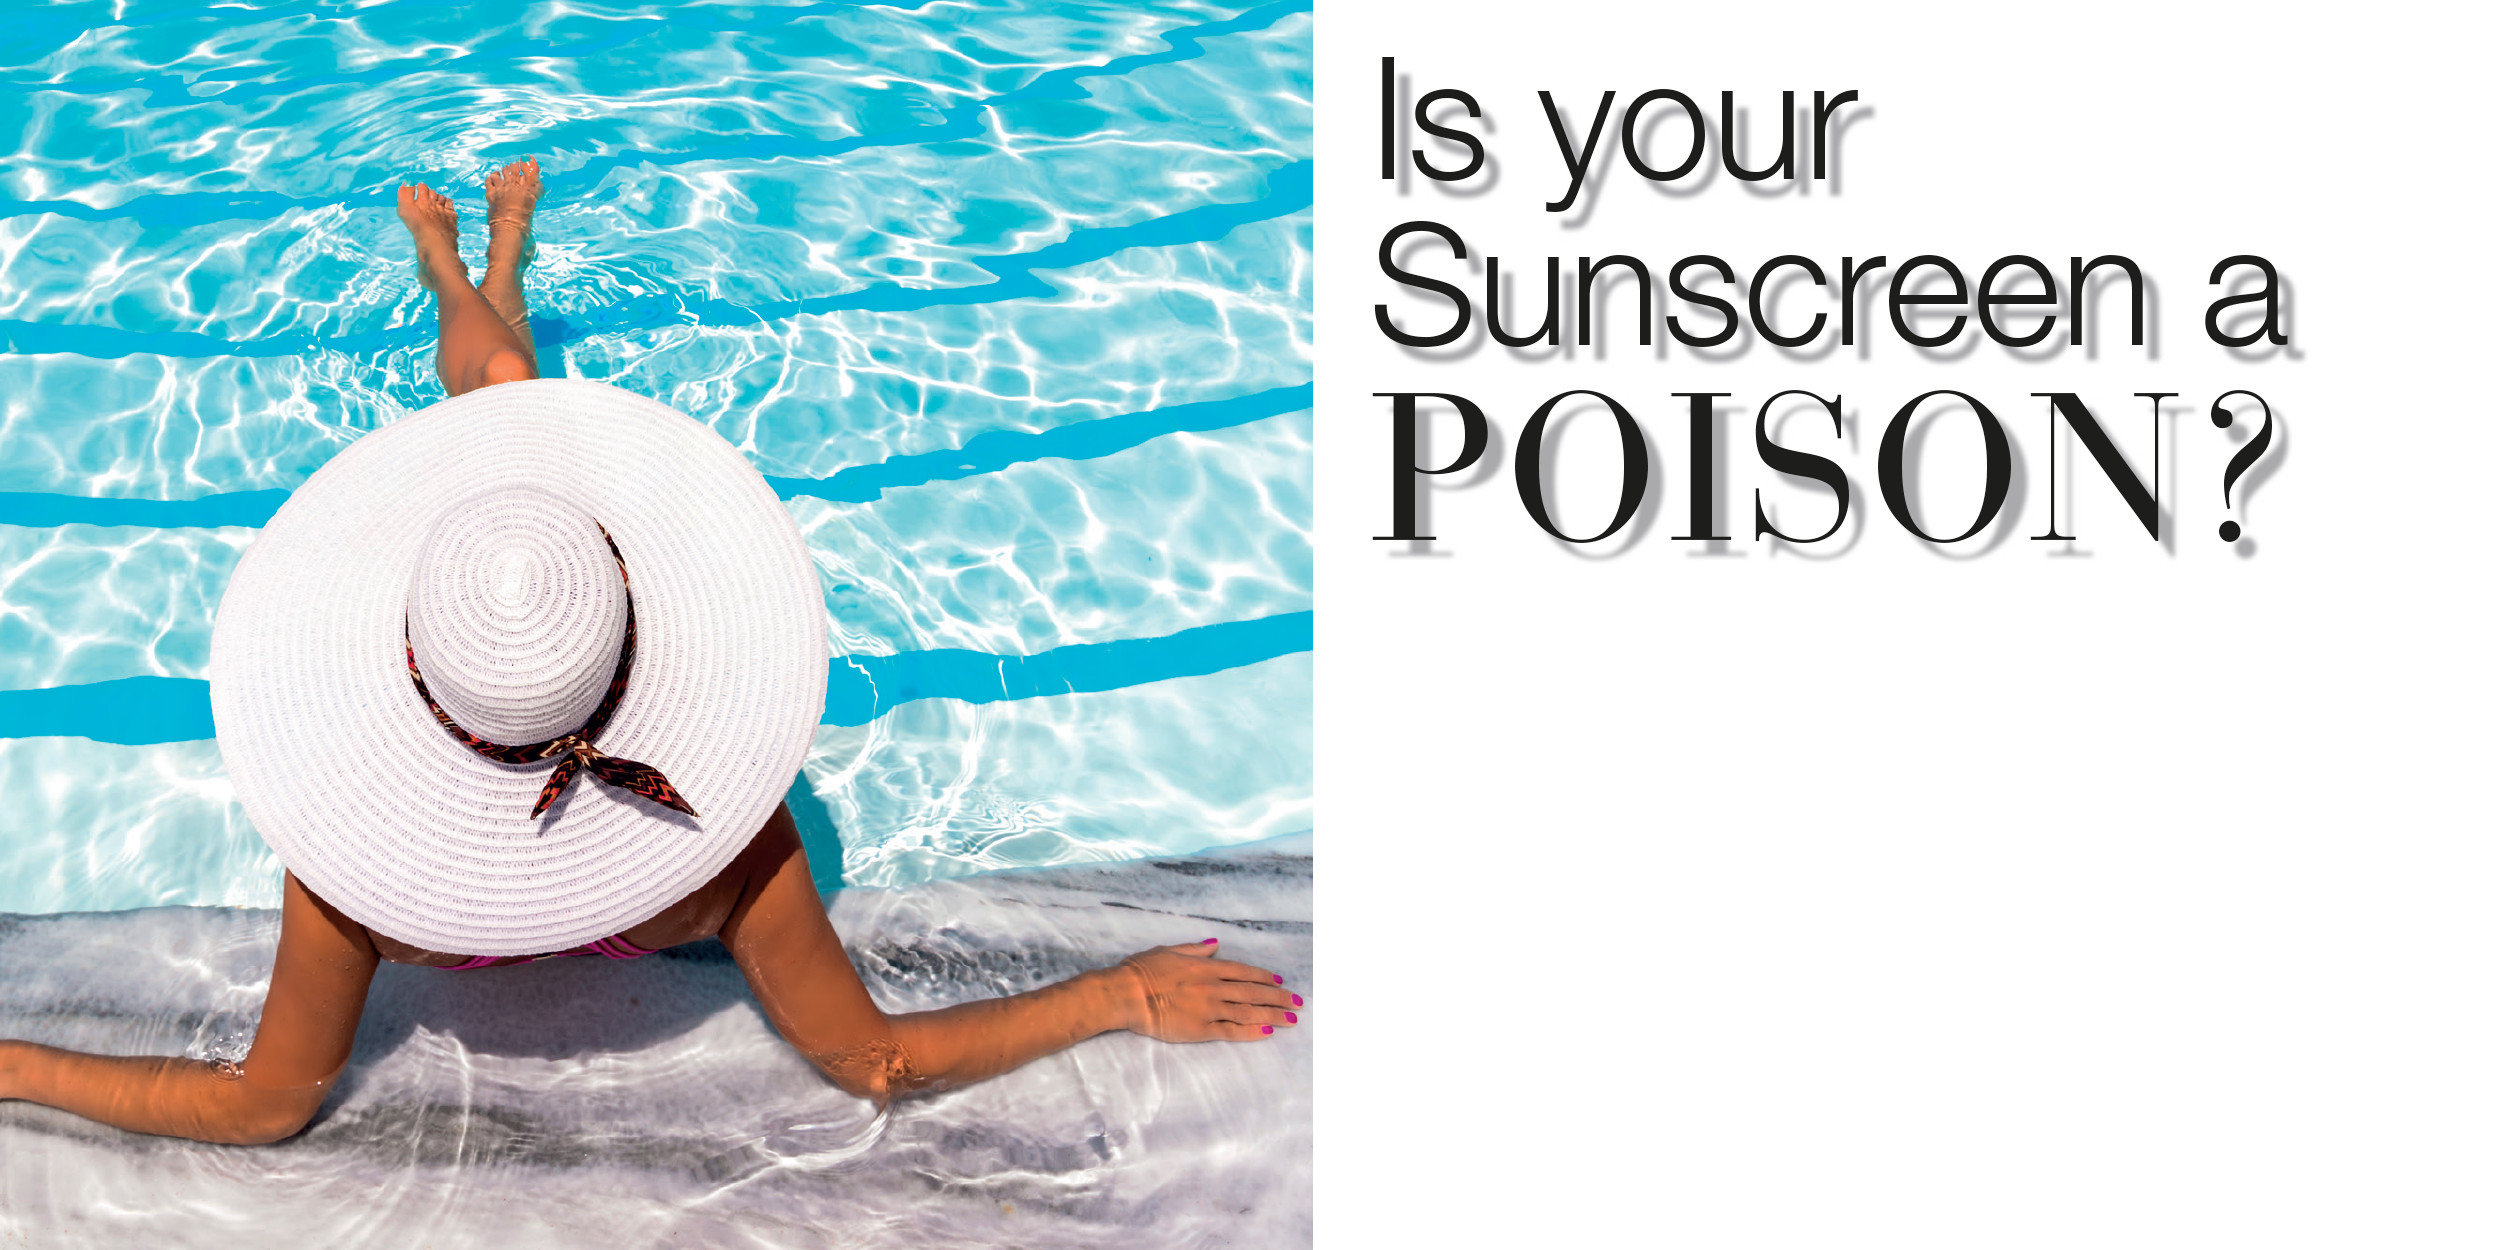 Is your sunscreen a poision ?